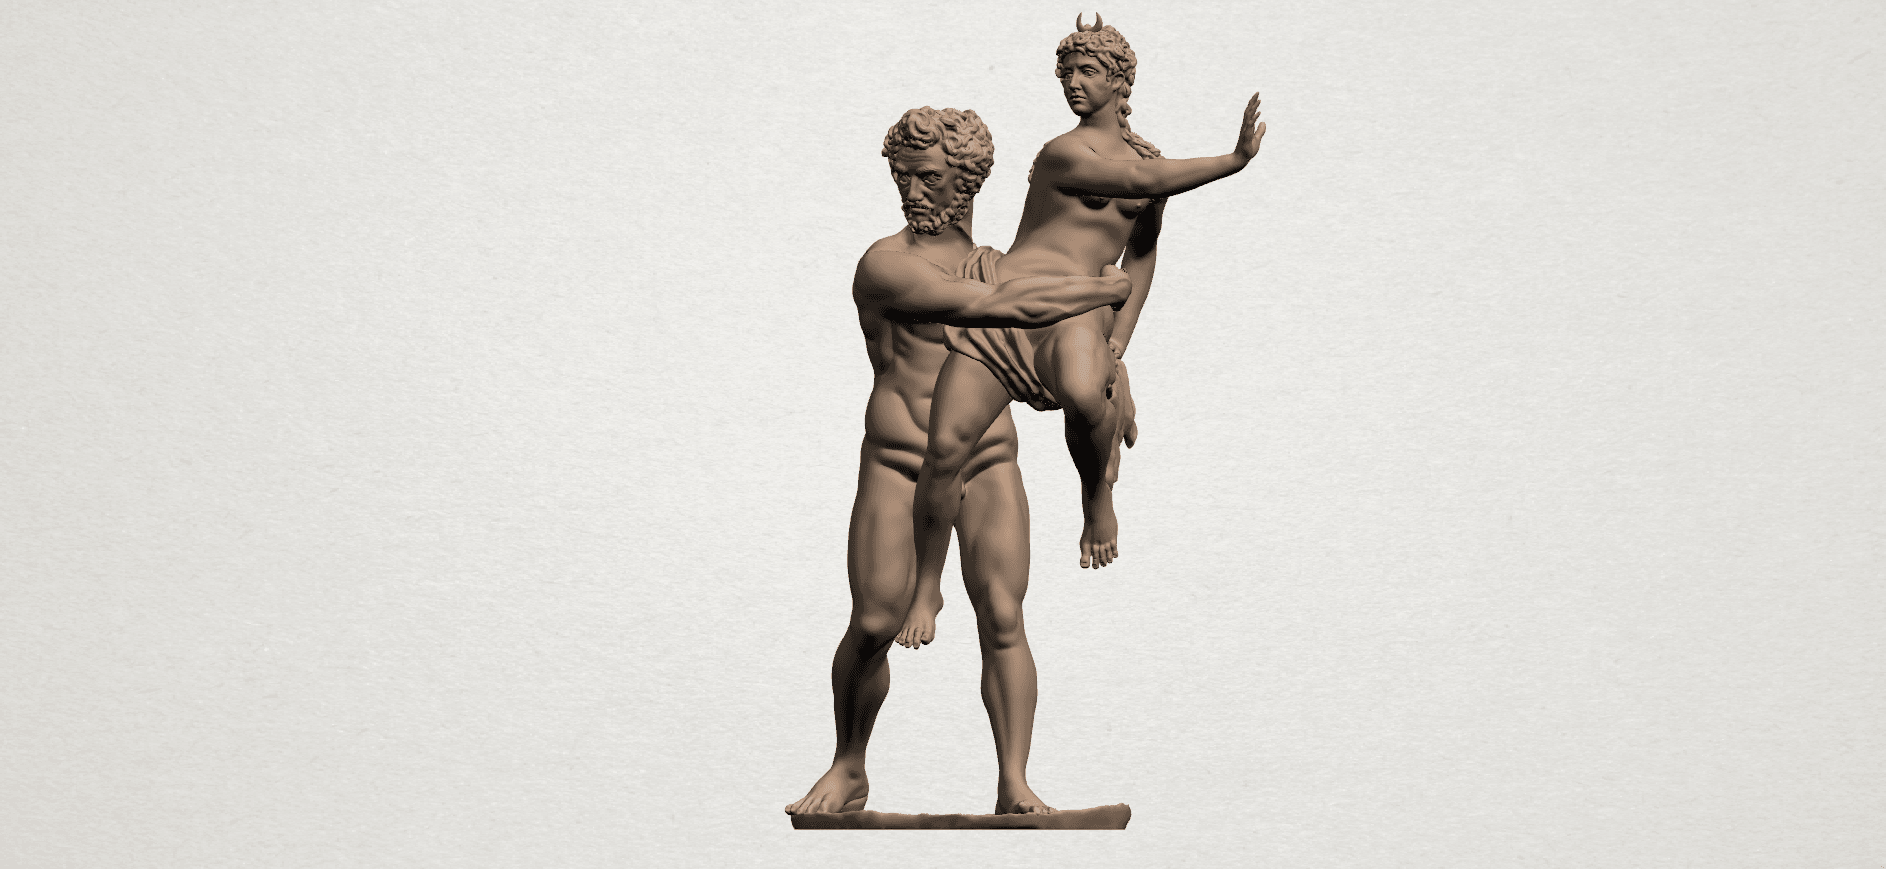 Naked Couple (iv) A08.png Download free STL file Naked Couple 04 • 3D printable model, GeorgesNikkei